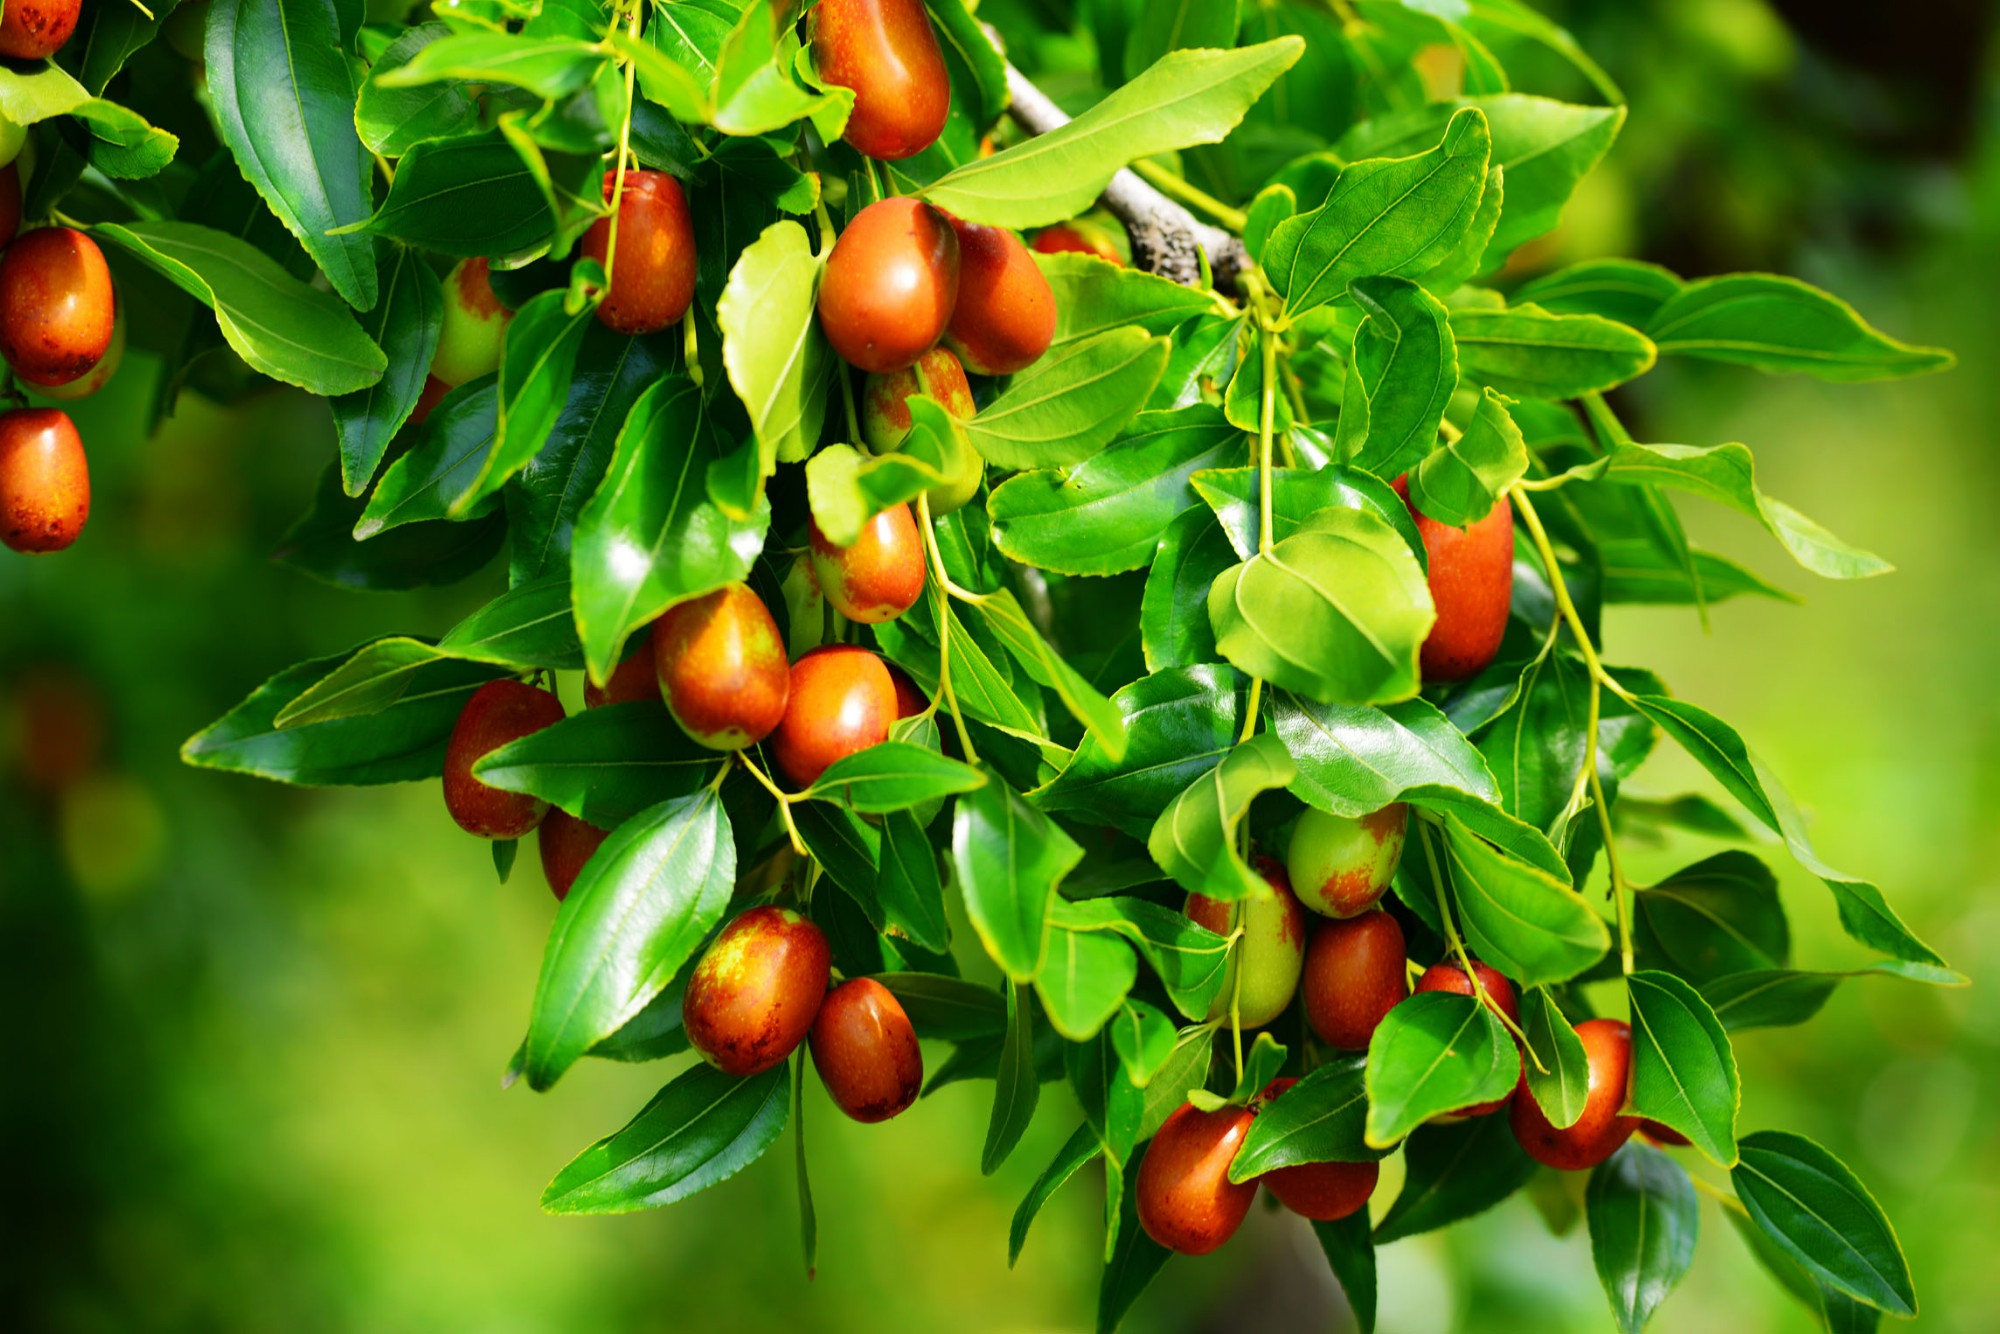 Analysis of main therapeutic efficacy and medicinal value of jujube